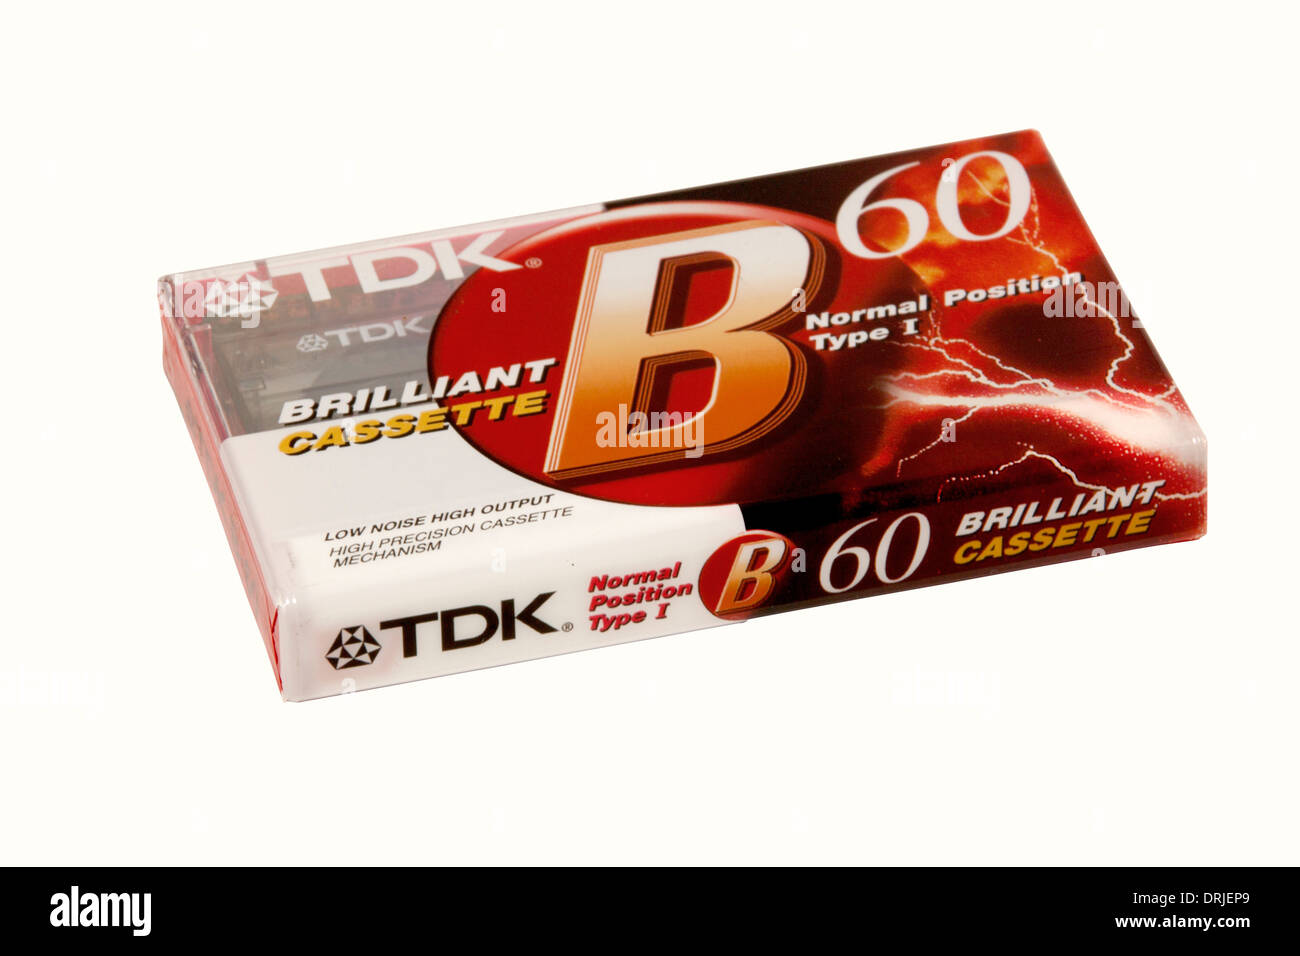 DURBAN, SOUTH AFRICA - JANUARY 27, 2014: Unopened TDK 60 Minute cassette tape - Stock Image